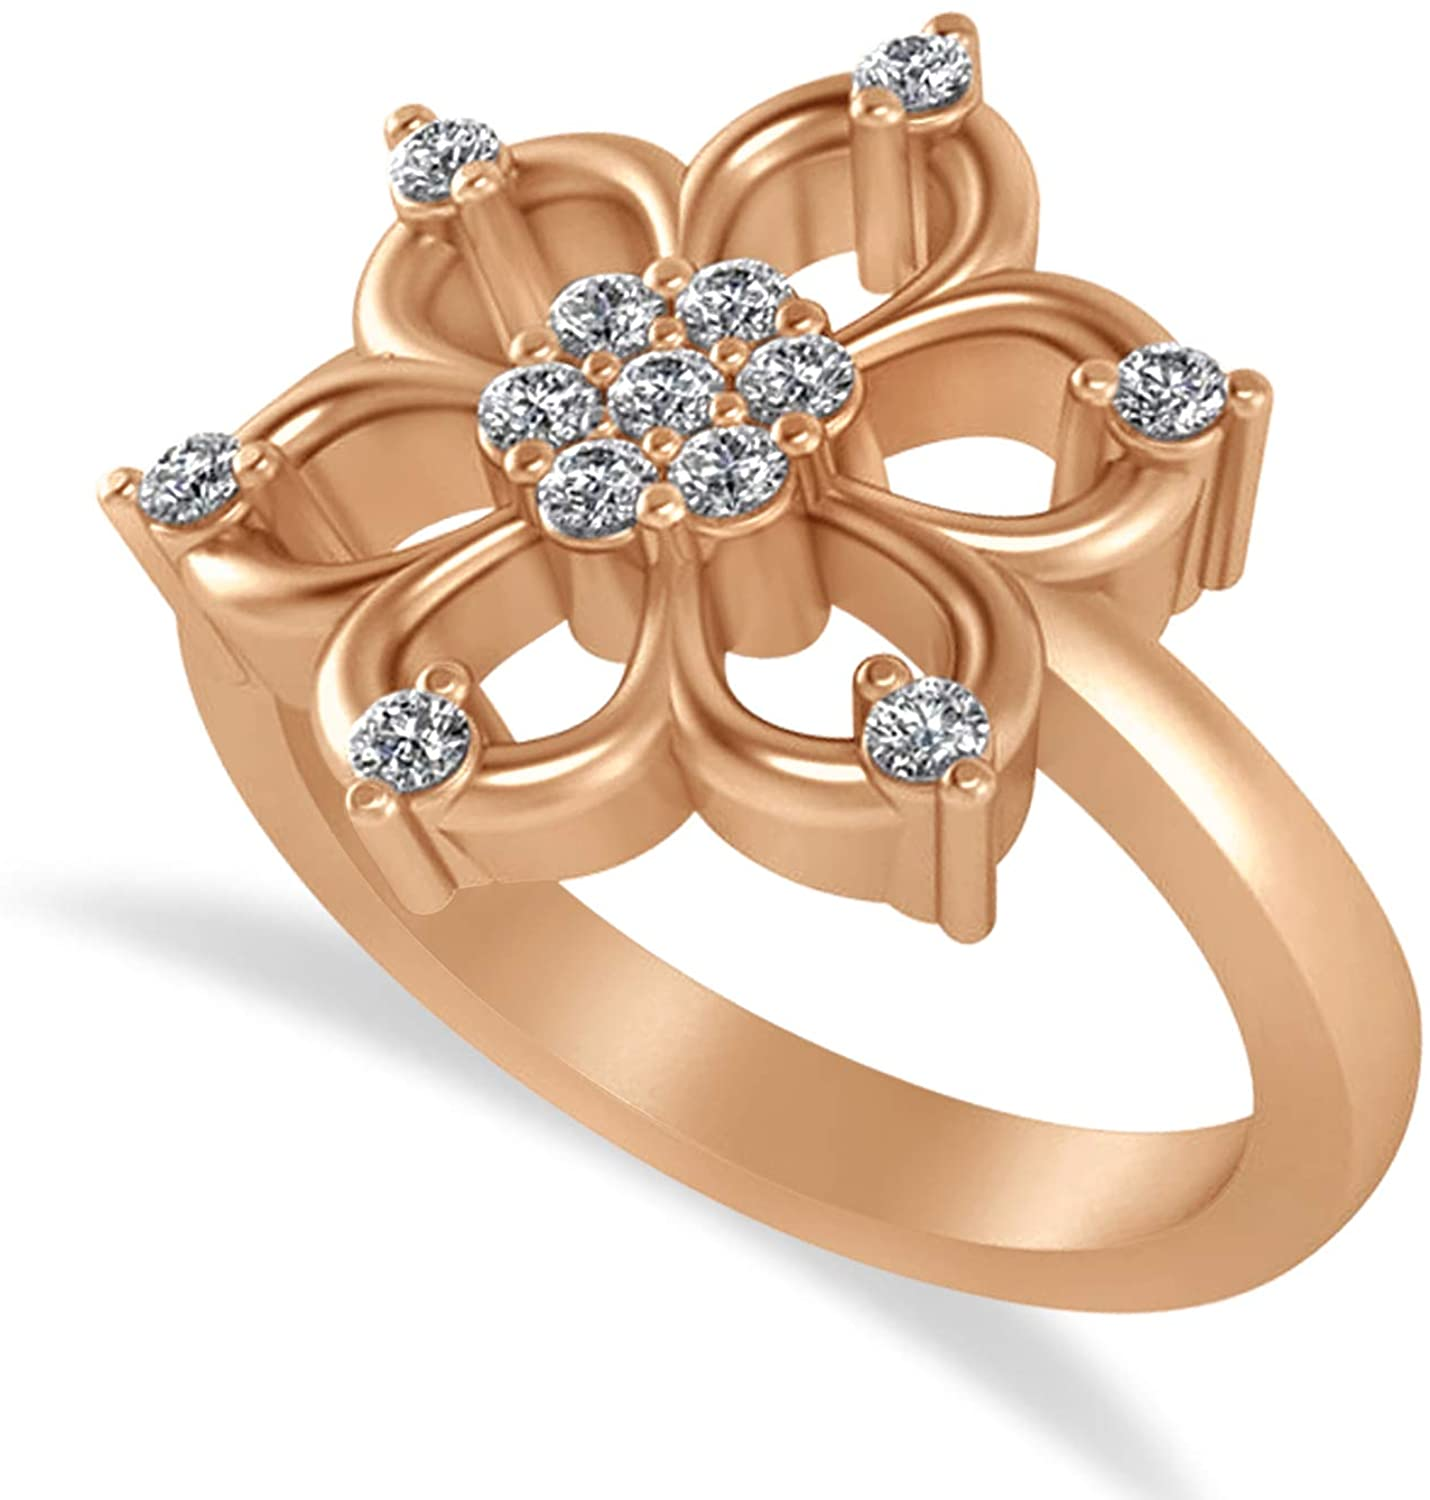 Allurez Diamond Six-Petal Flower Ring/Wedding Band 14k Rose Gold (0.26ct)